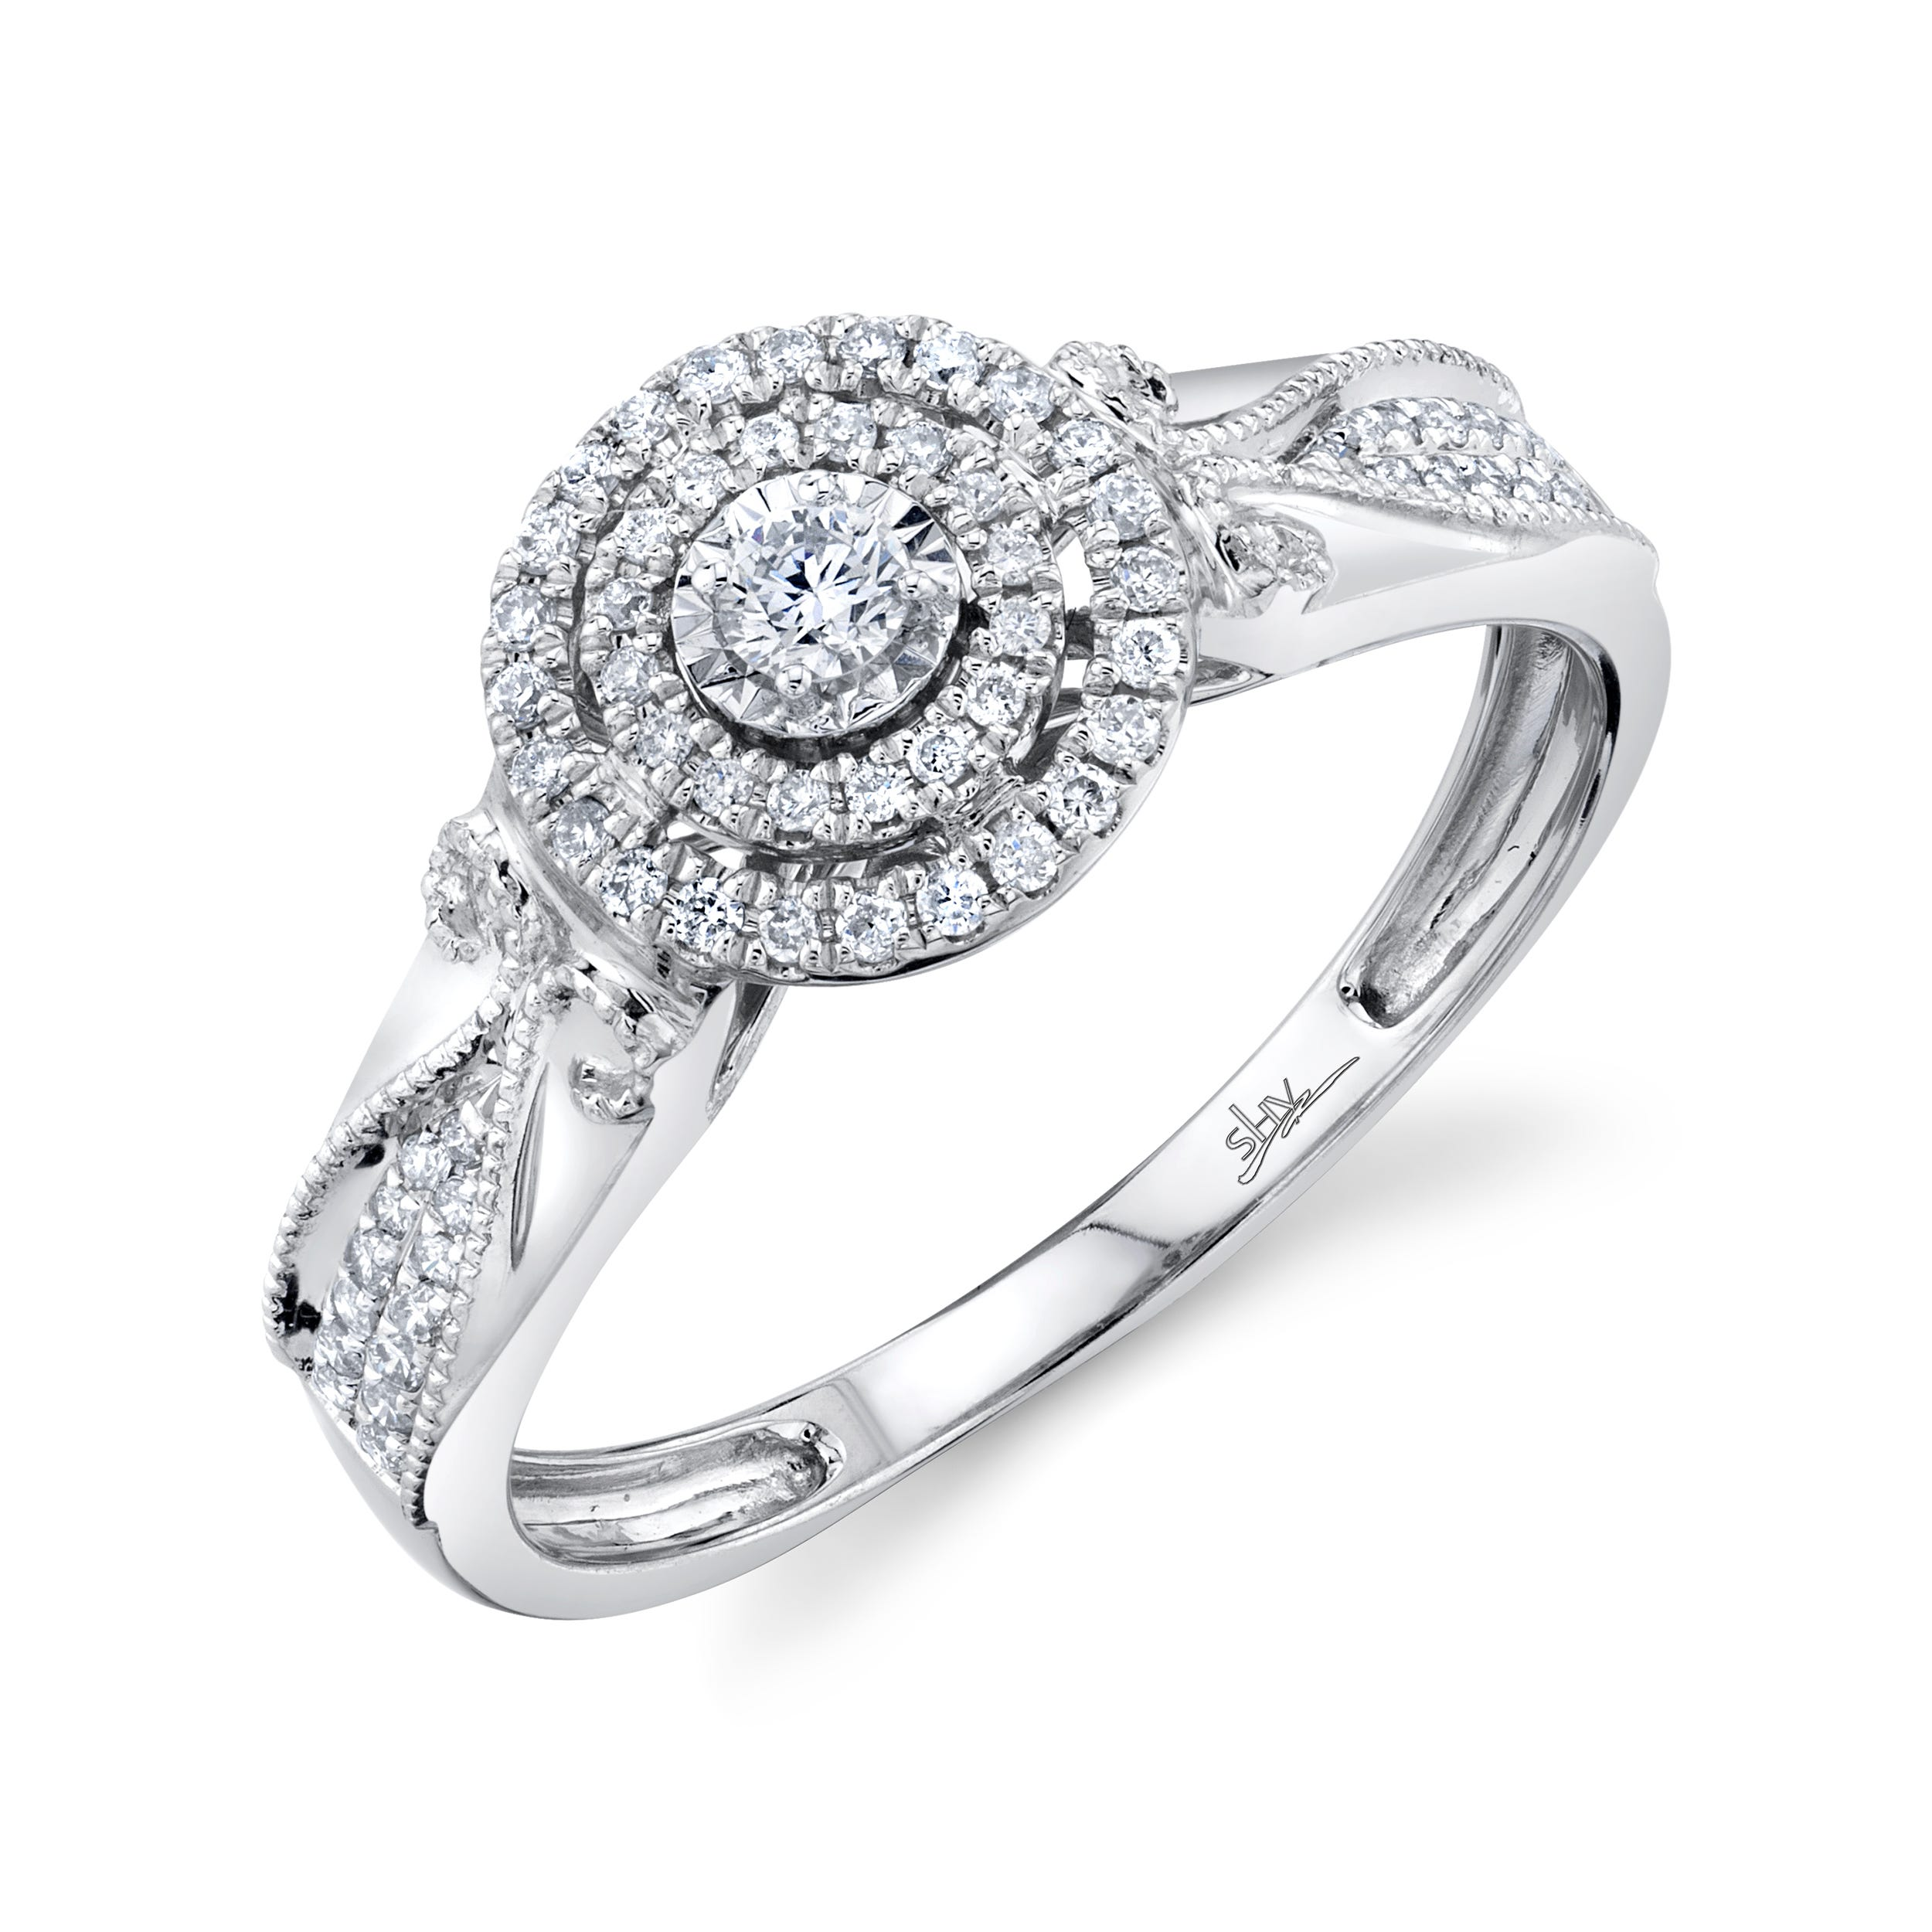 Shy Creation 1/4ctw. Diamond Double Halo Engagement Ring in 14k White Gold SC22007096